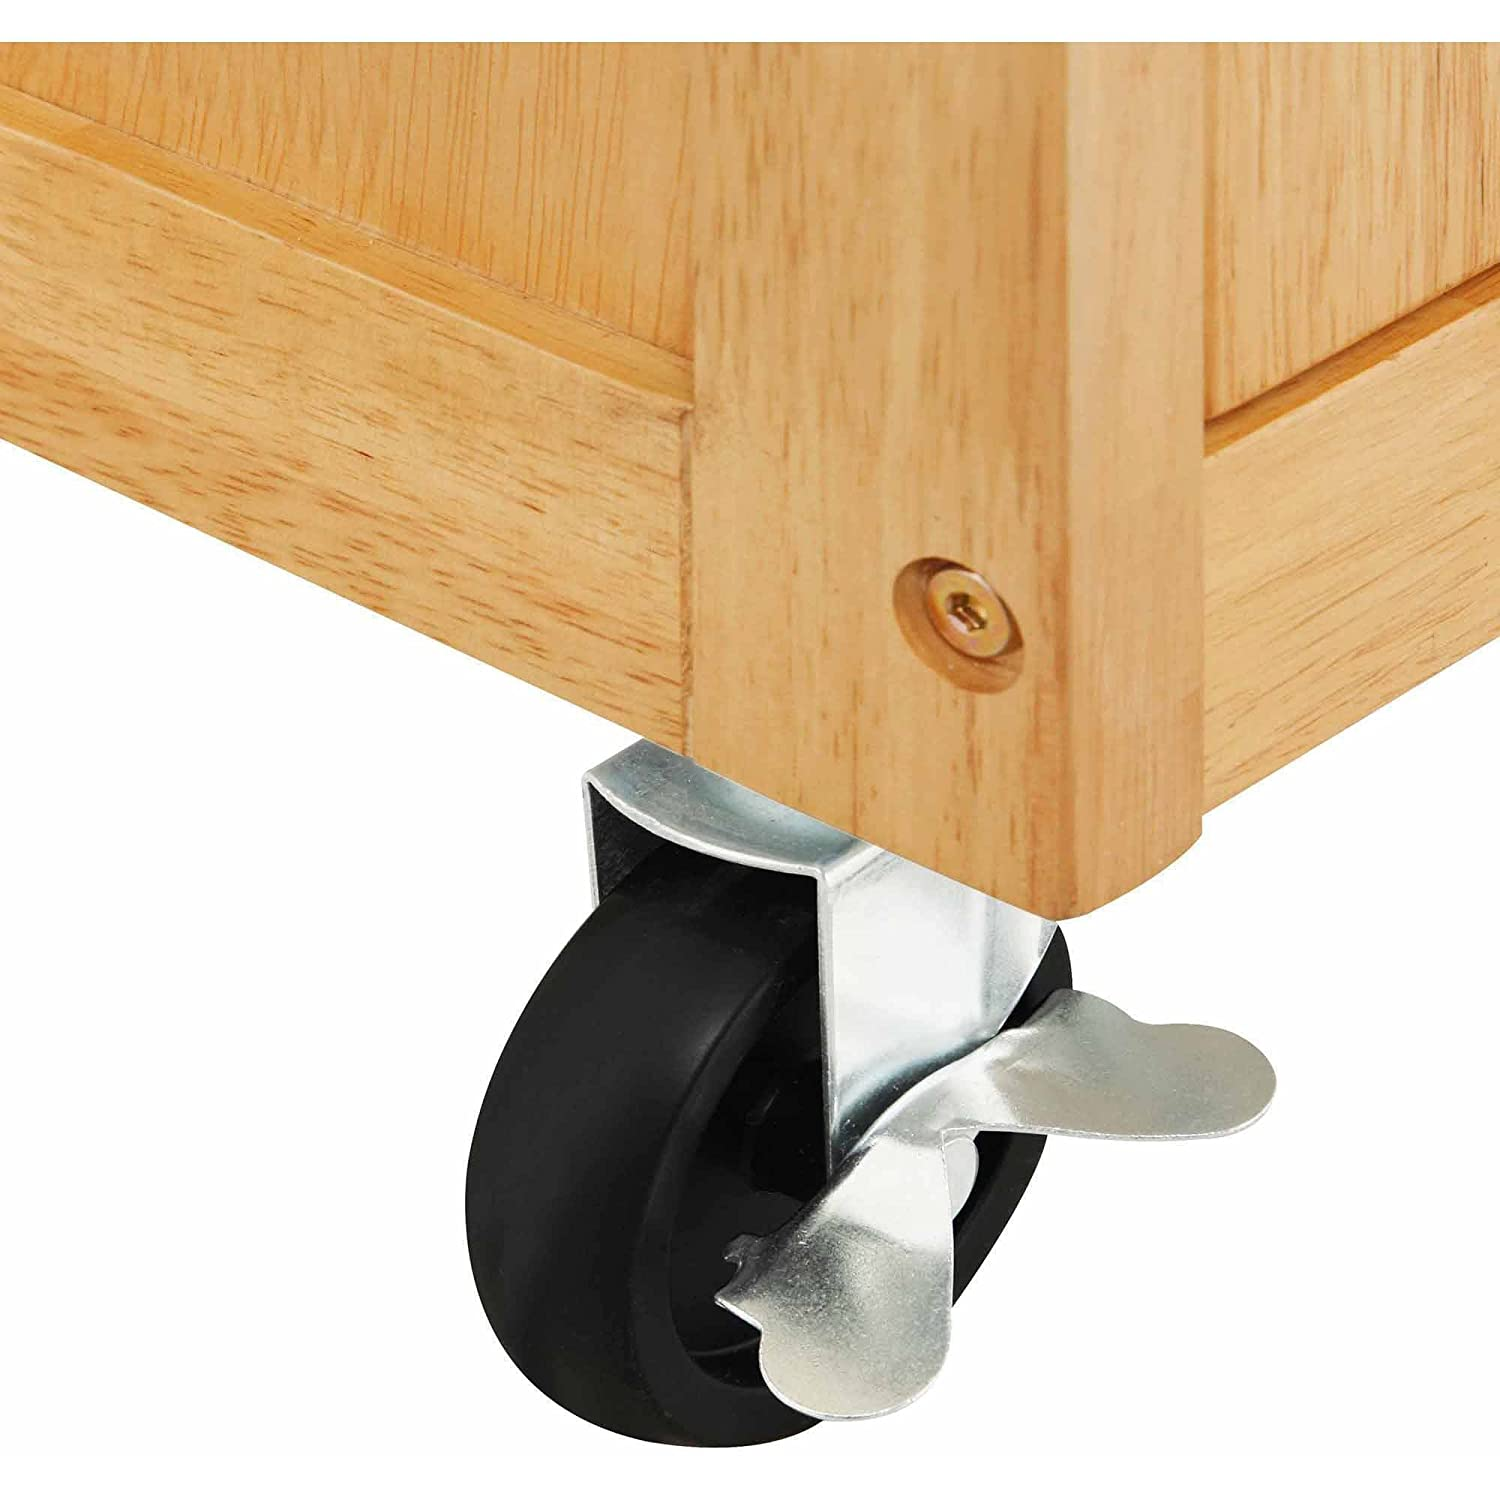 Kitchen Islands and Carts Cabinets and Storage Solutions With Drawers Towel Rack Solid Wood Natural Finish